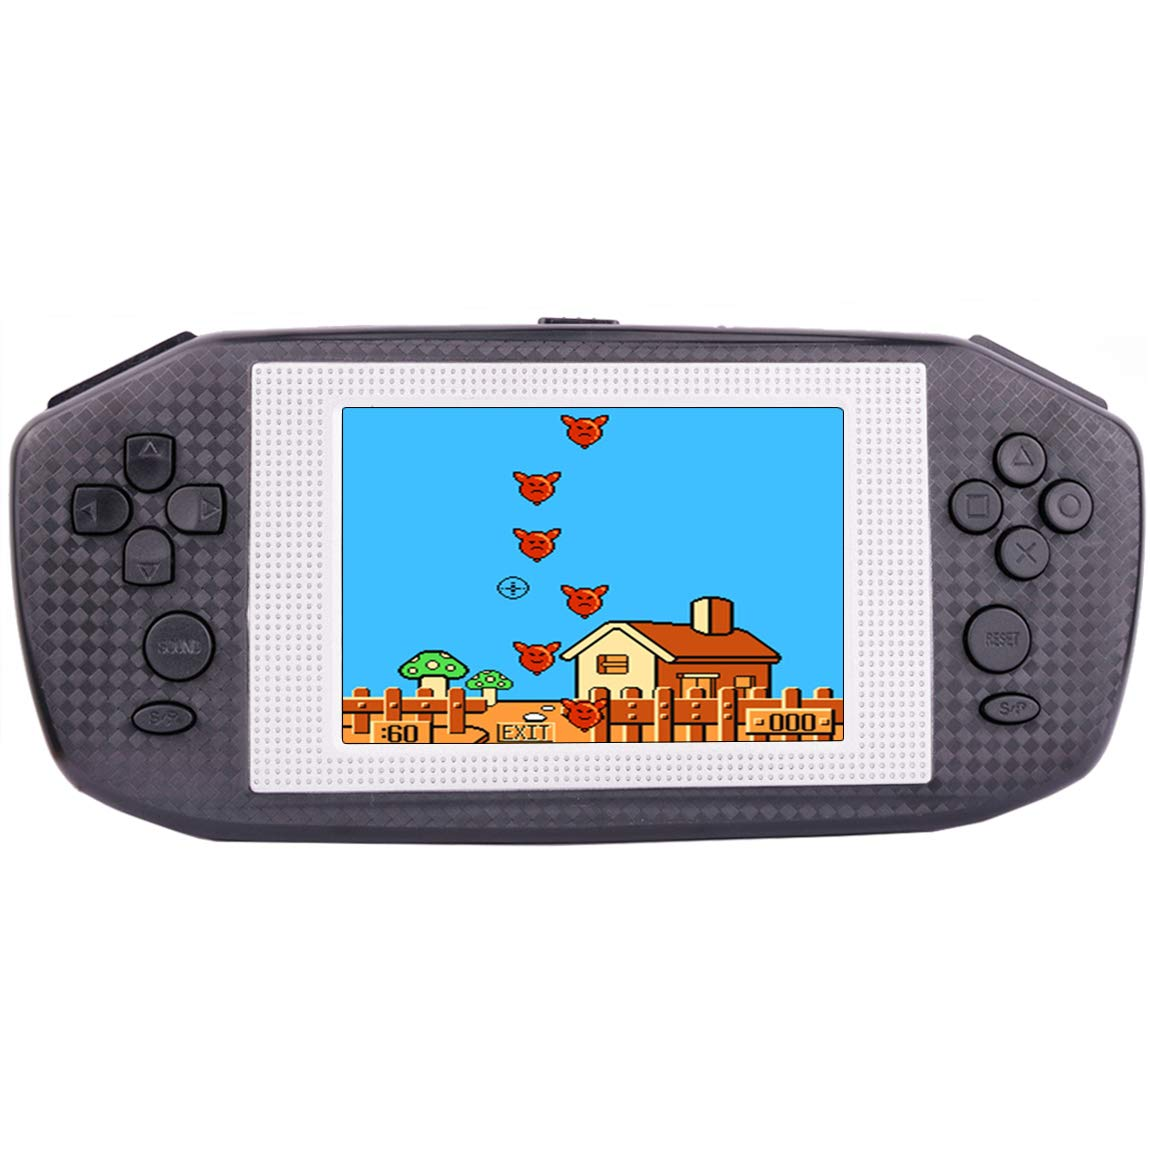 Beico Handheld Games for Kids Adults 3.5'' Large Screen Built in 416 Classic Retro Video Games Seniors Electronic Games Consoles Birthday Present (Black) by Beico (Image #1)